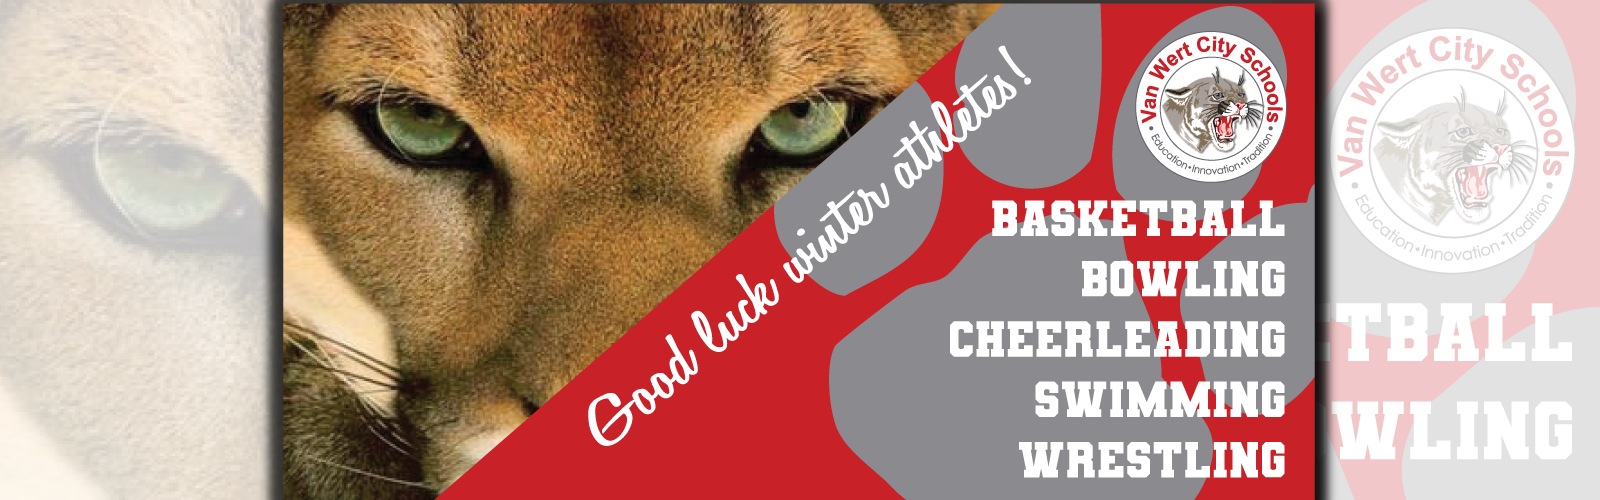 Good luck winter sports - basketball, bowling, cheerleading, swimming, wrestling with a picture of a cougar